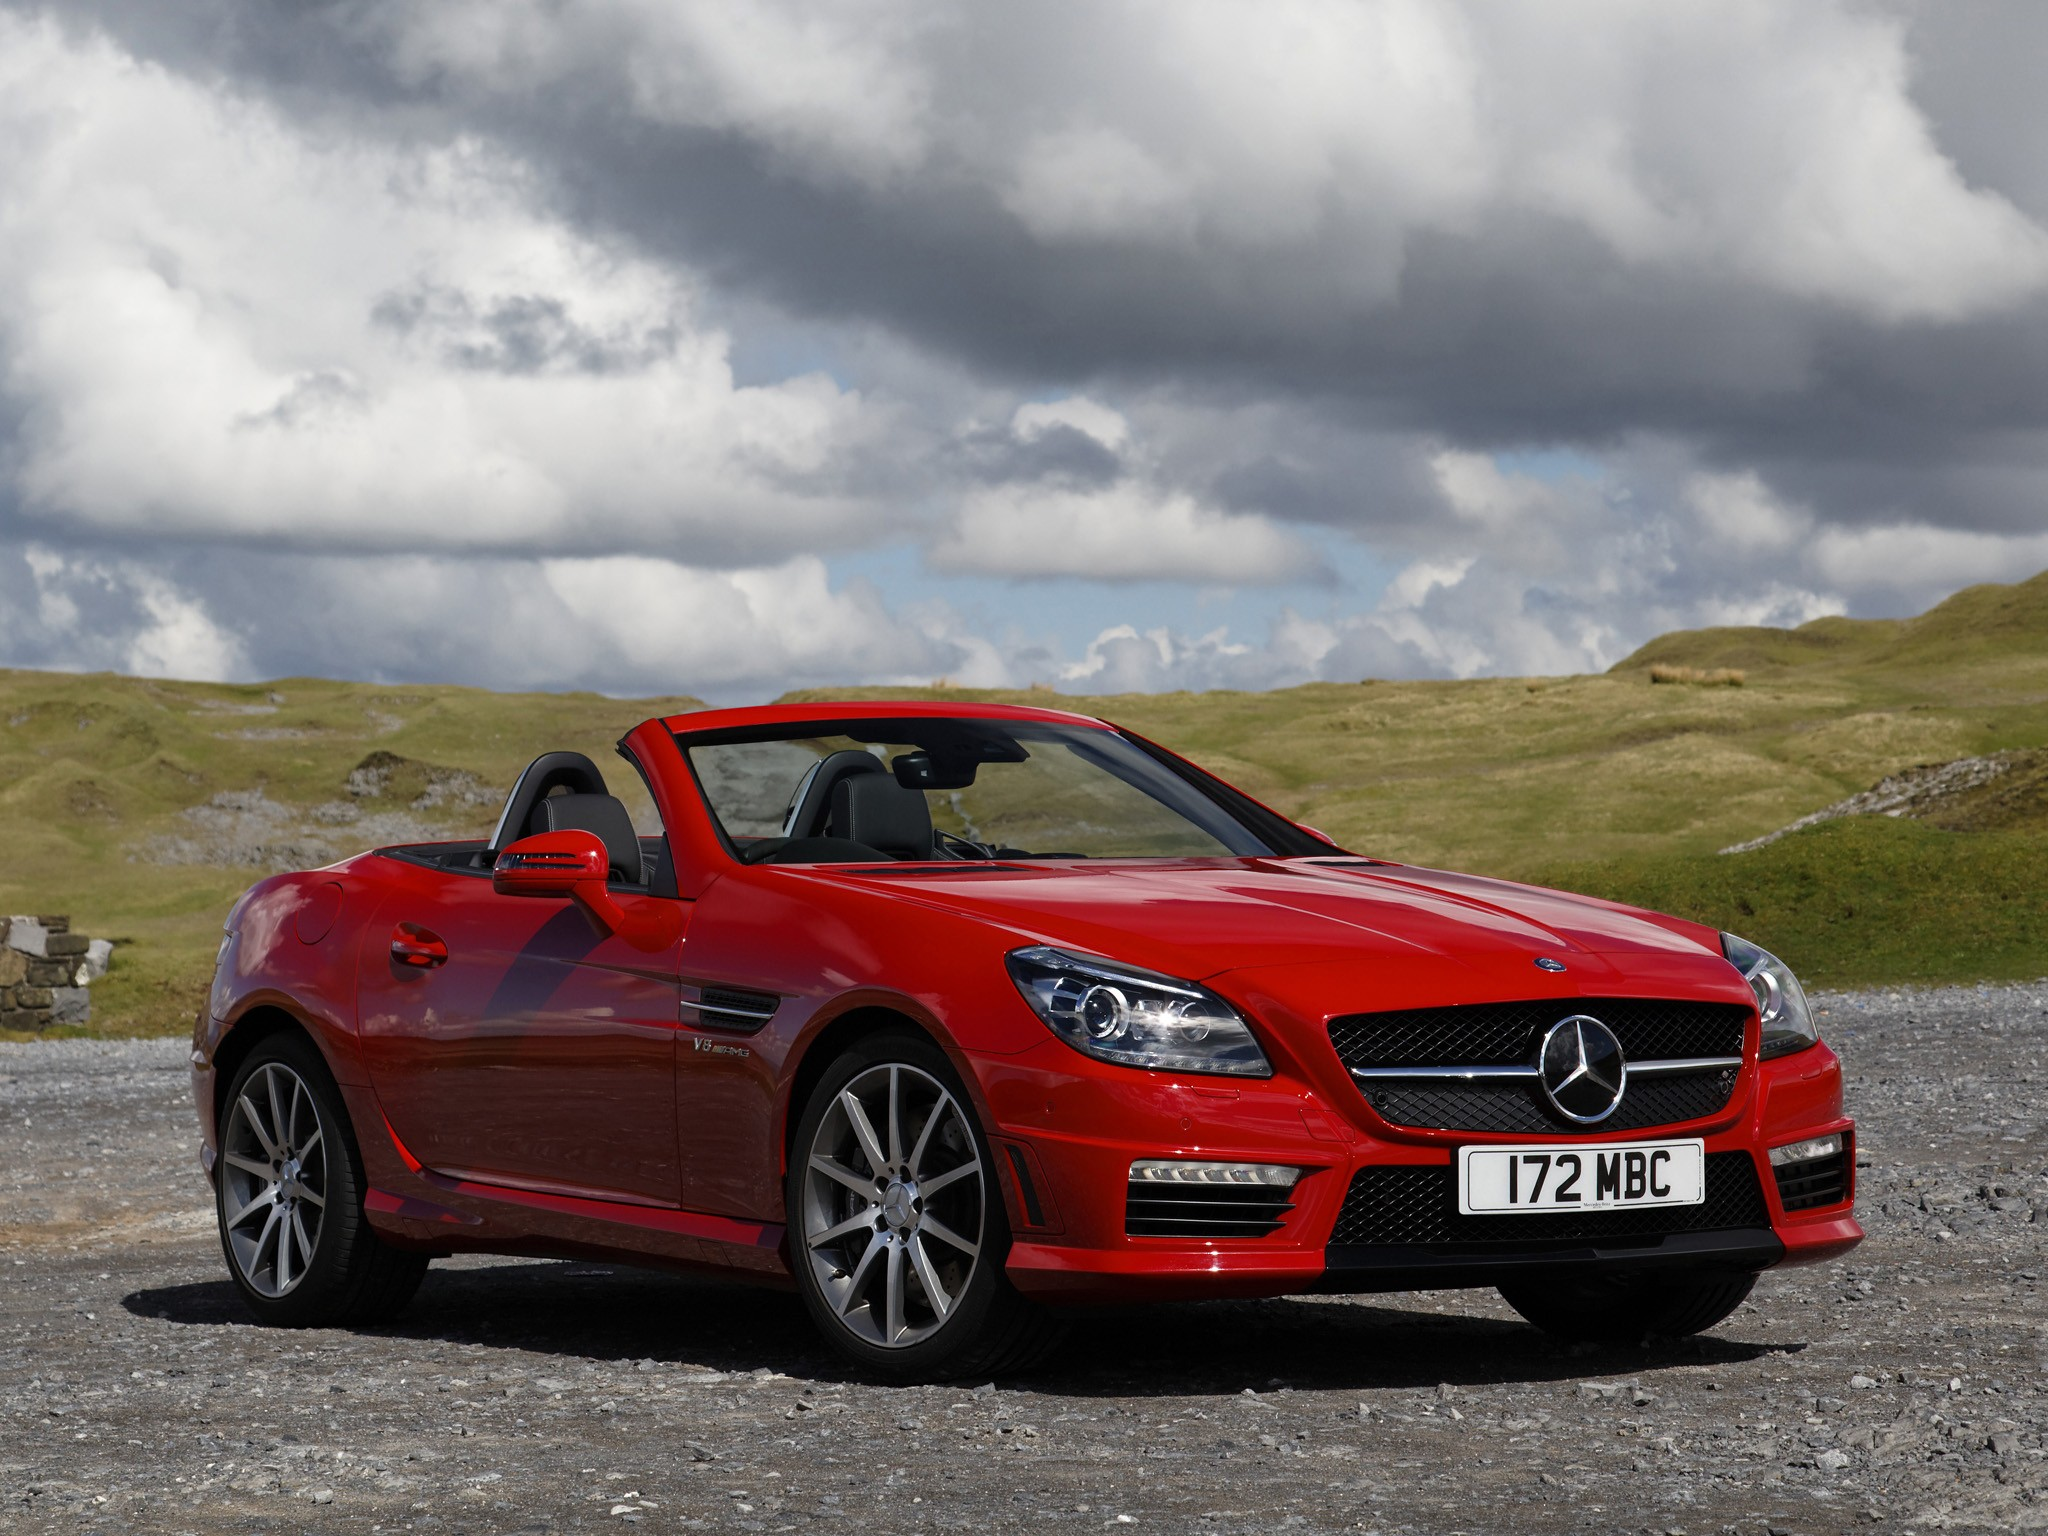 mercedes benz slk 55 amg r172 specs photos 2012. Black Bedroom Furniture Sets. Home Design Ideas